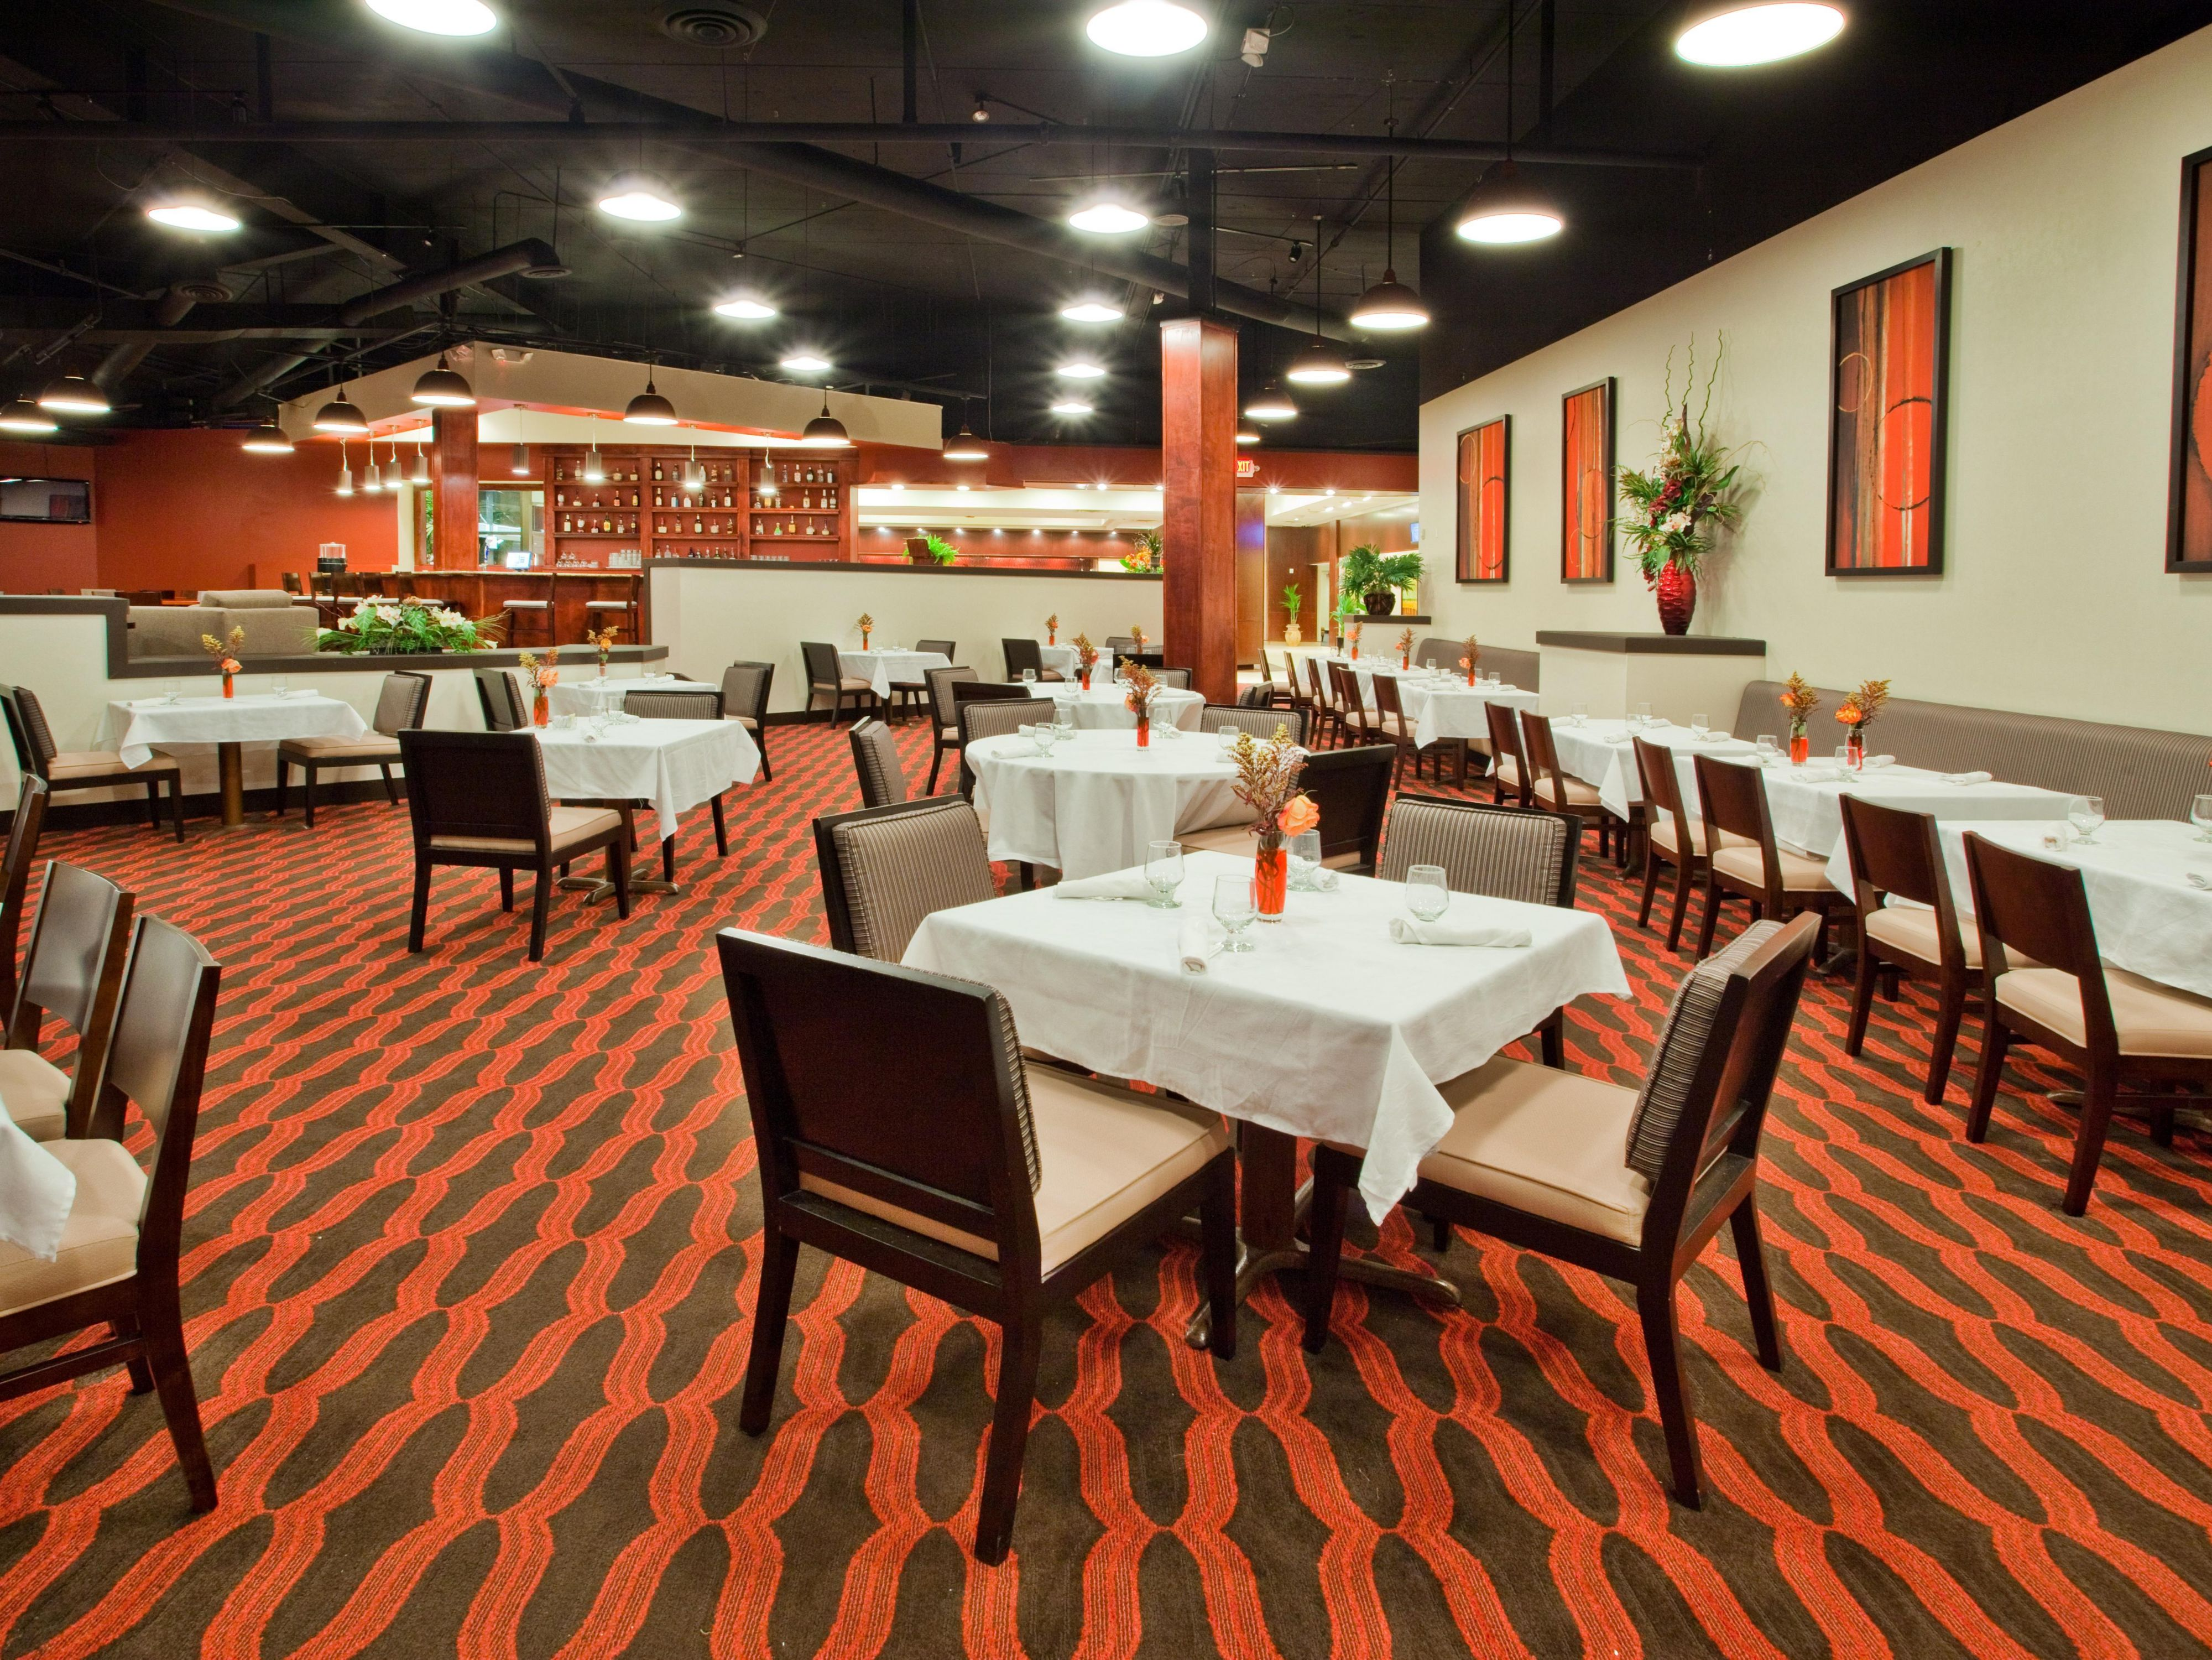 Awesome Restaurant Photo. Crowne Plaza Grand Rapids ...